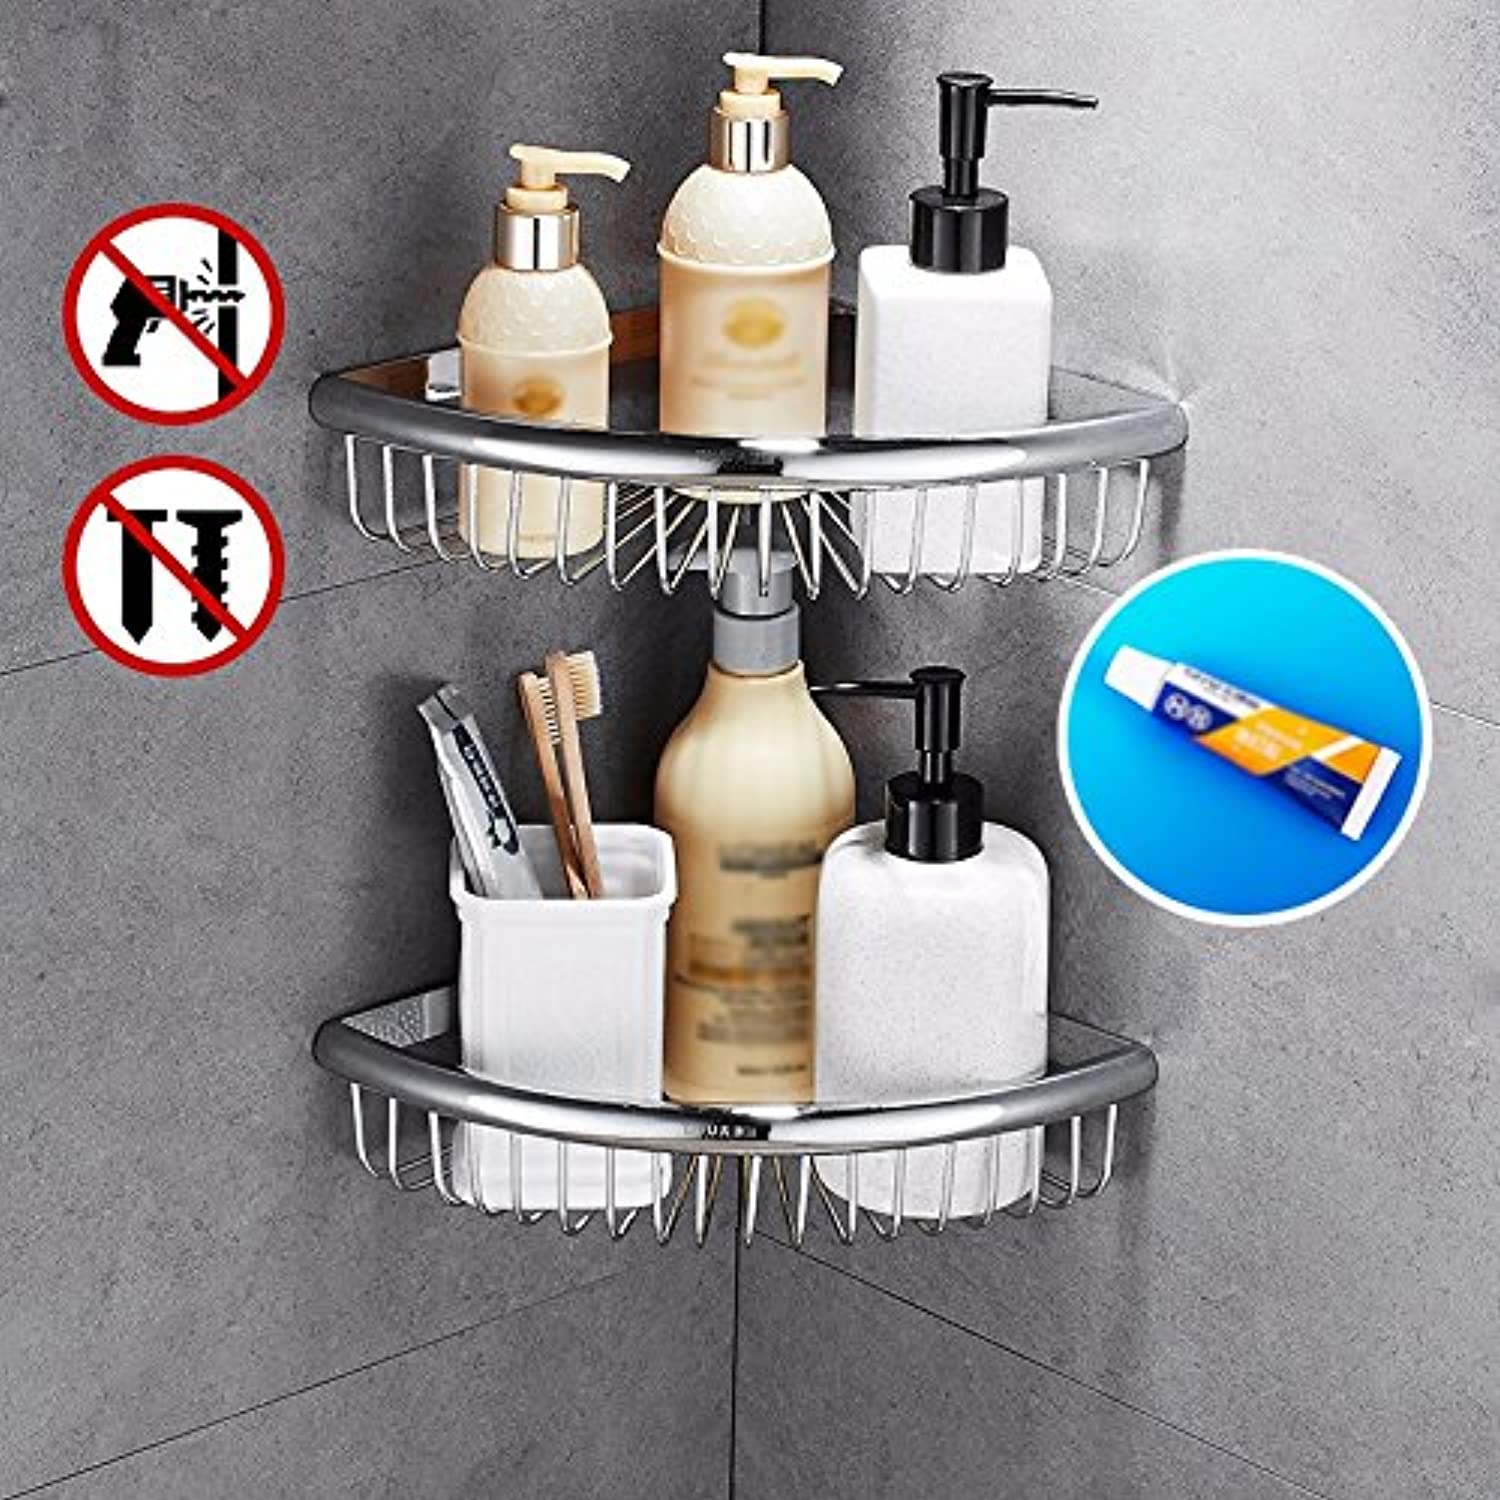 The Bathroom Rack Without Drilling Copper Triangle Basket Corner Basket Bathroom Shelf Corner Basket Bathroom Rack Basket Rack,2Layer